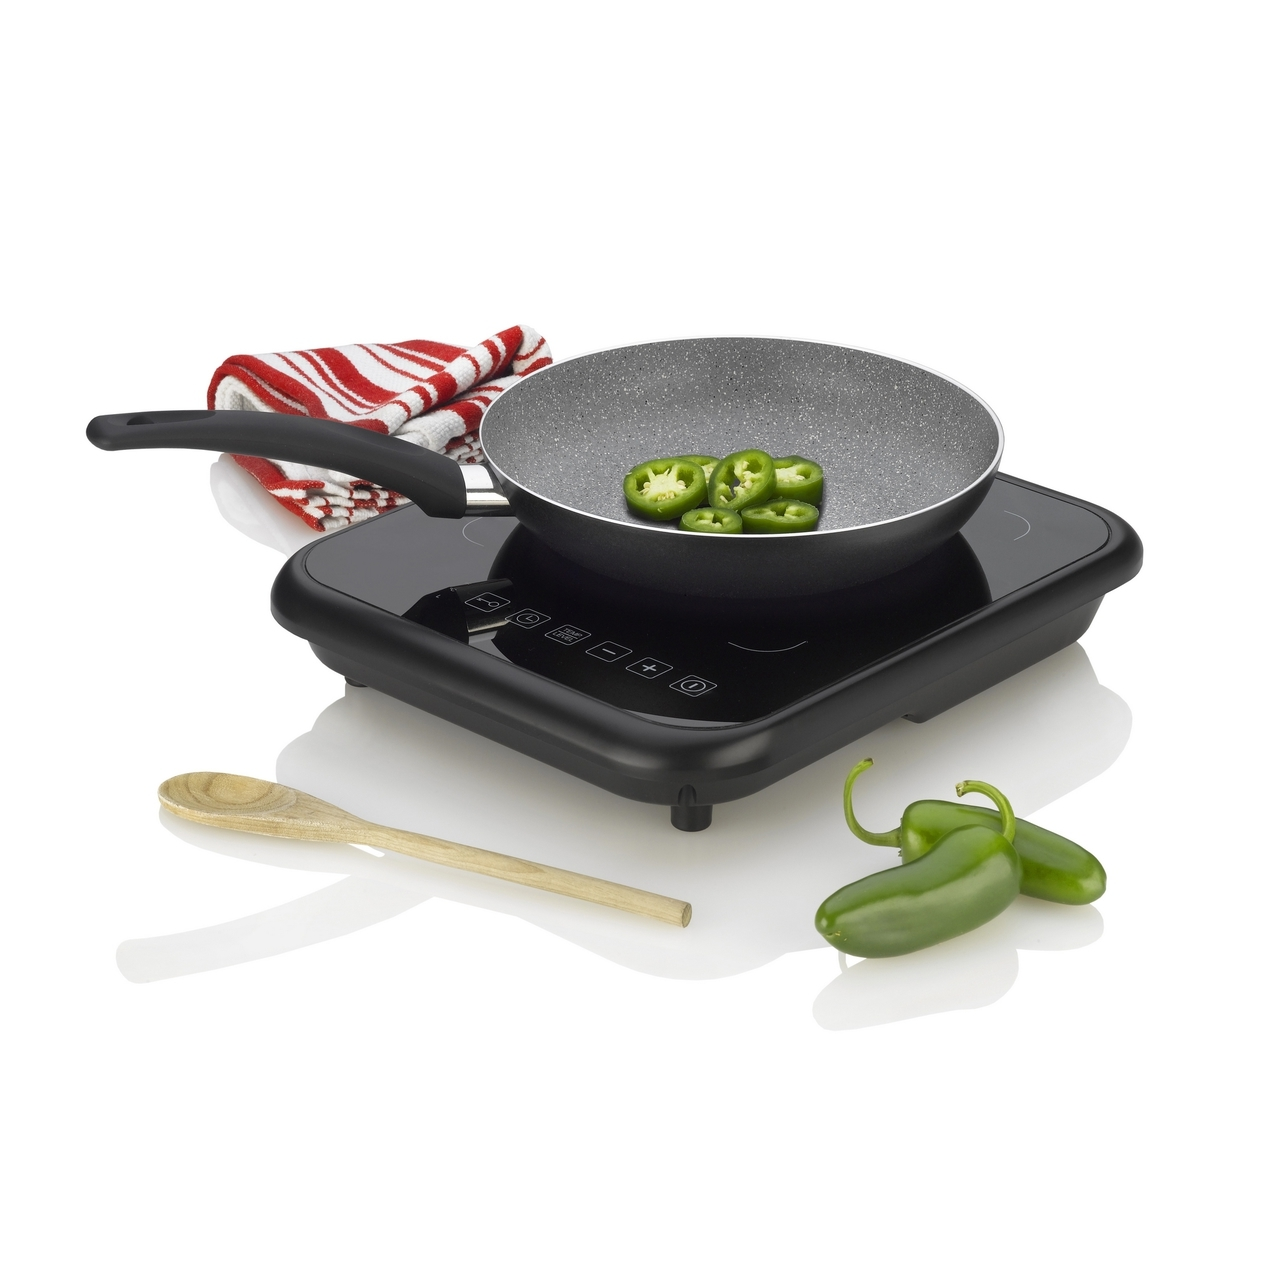 2X PORTABLE INDUCTION COOKTOP